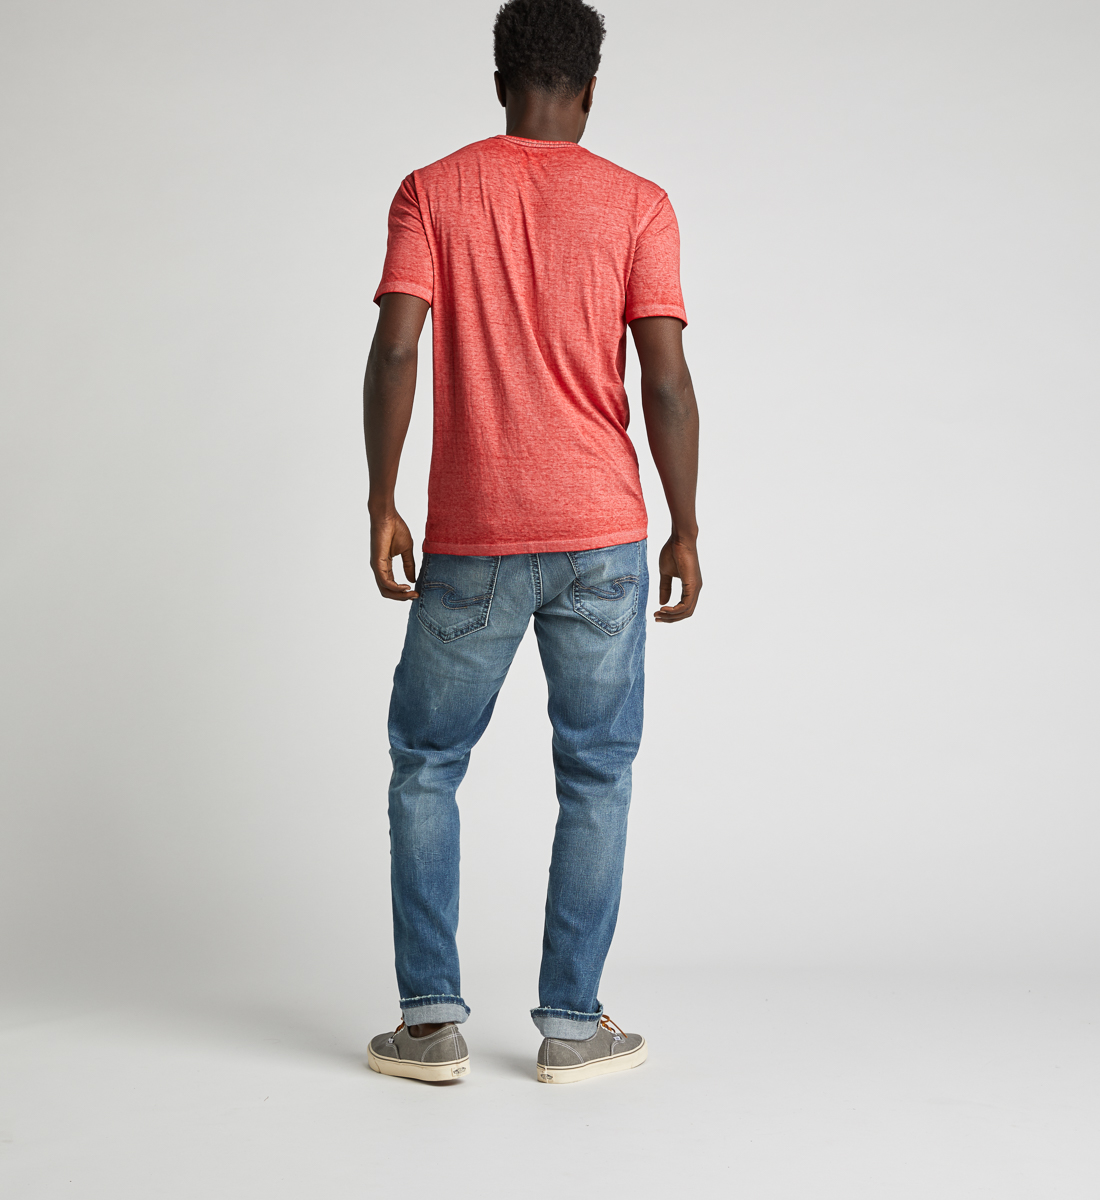 Kaleo Henley Tee,Red Side